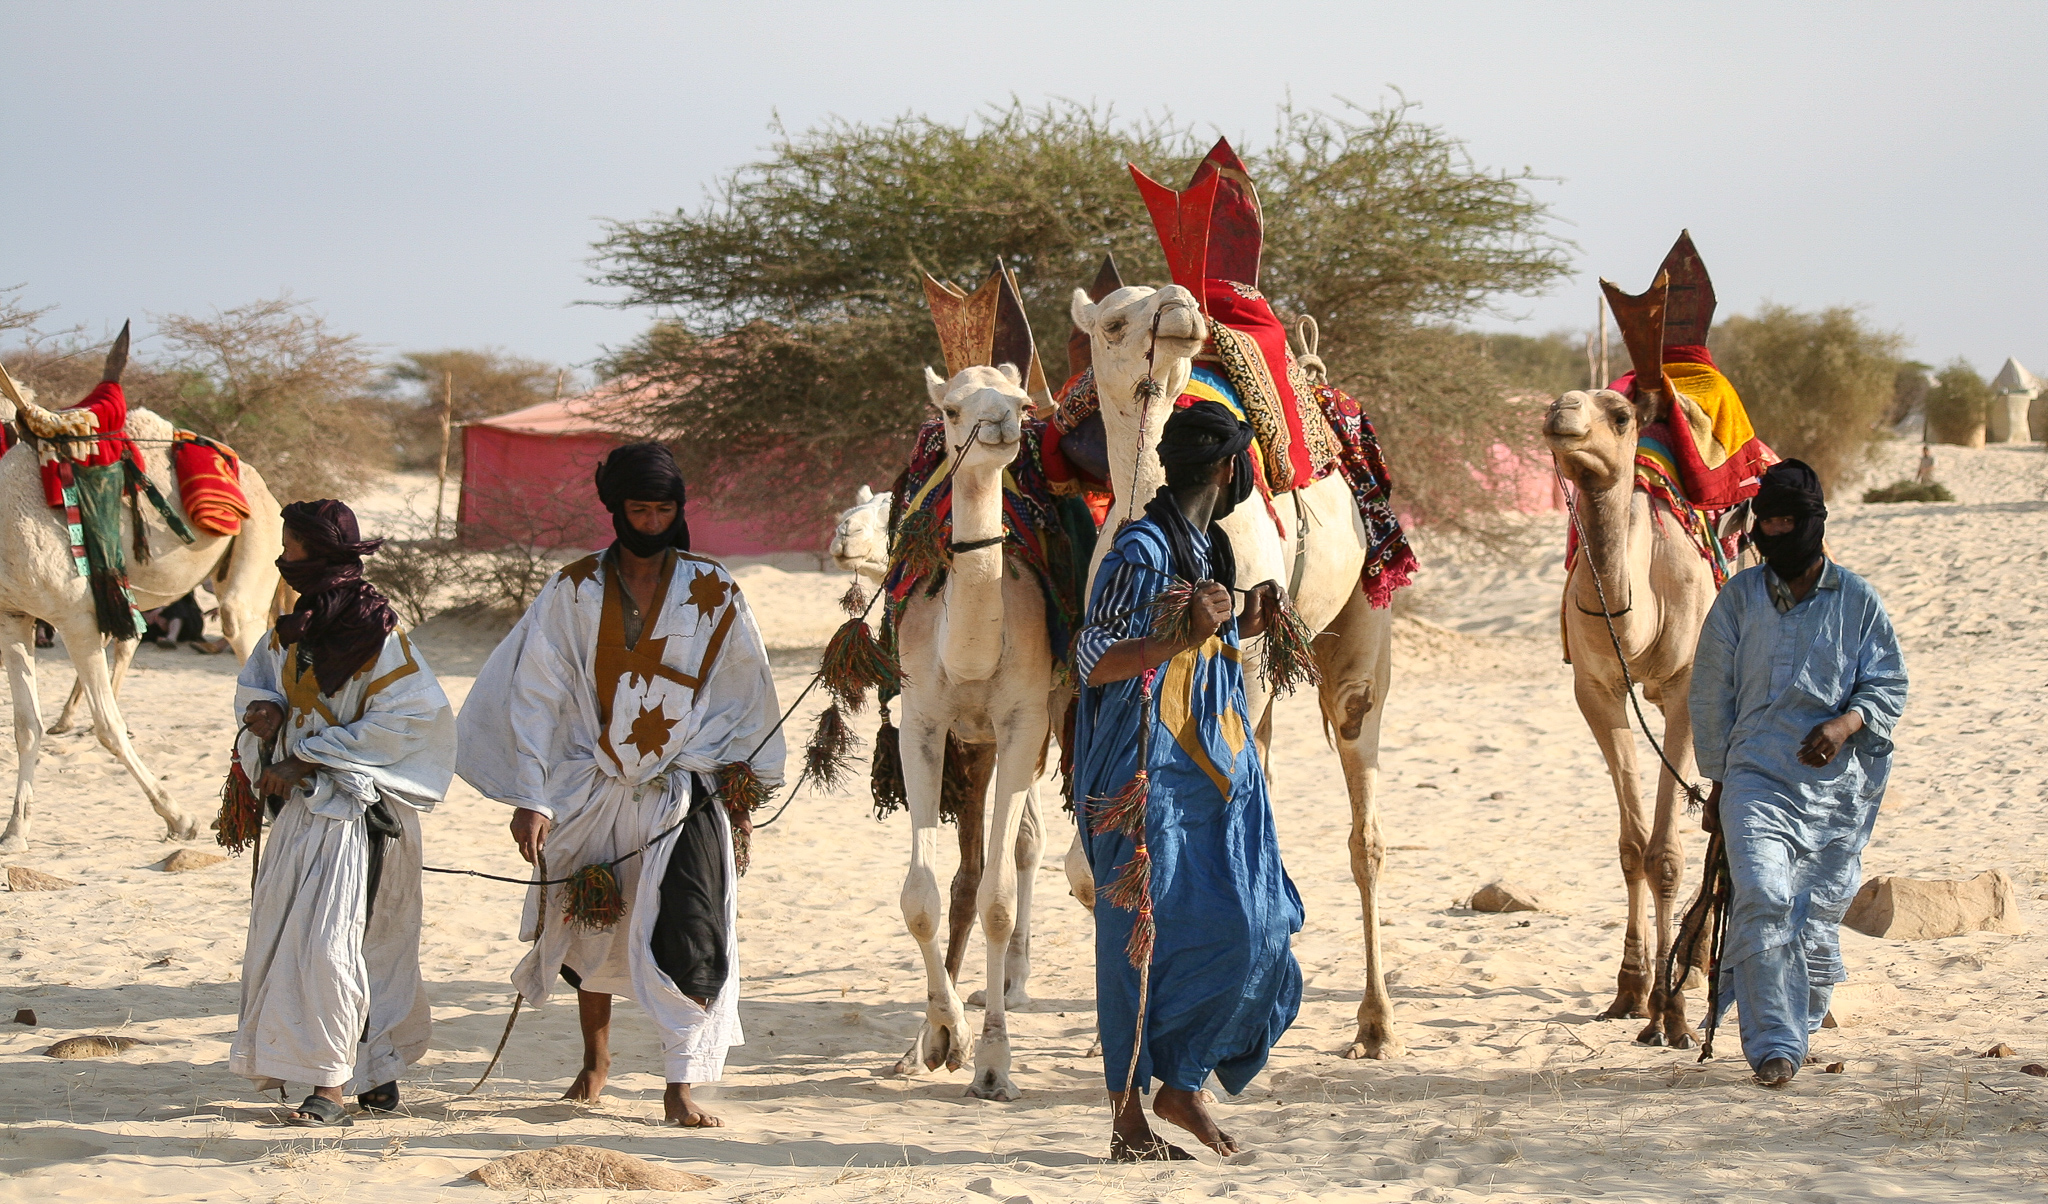 PARTICIPANTS ARRIVE FOR THE FESTIVAL FROM ALL CORNERS OF THE DESERT.